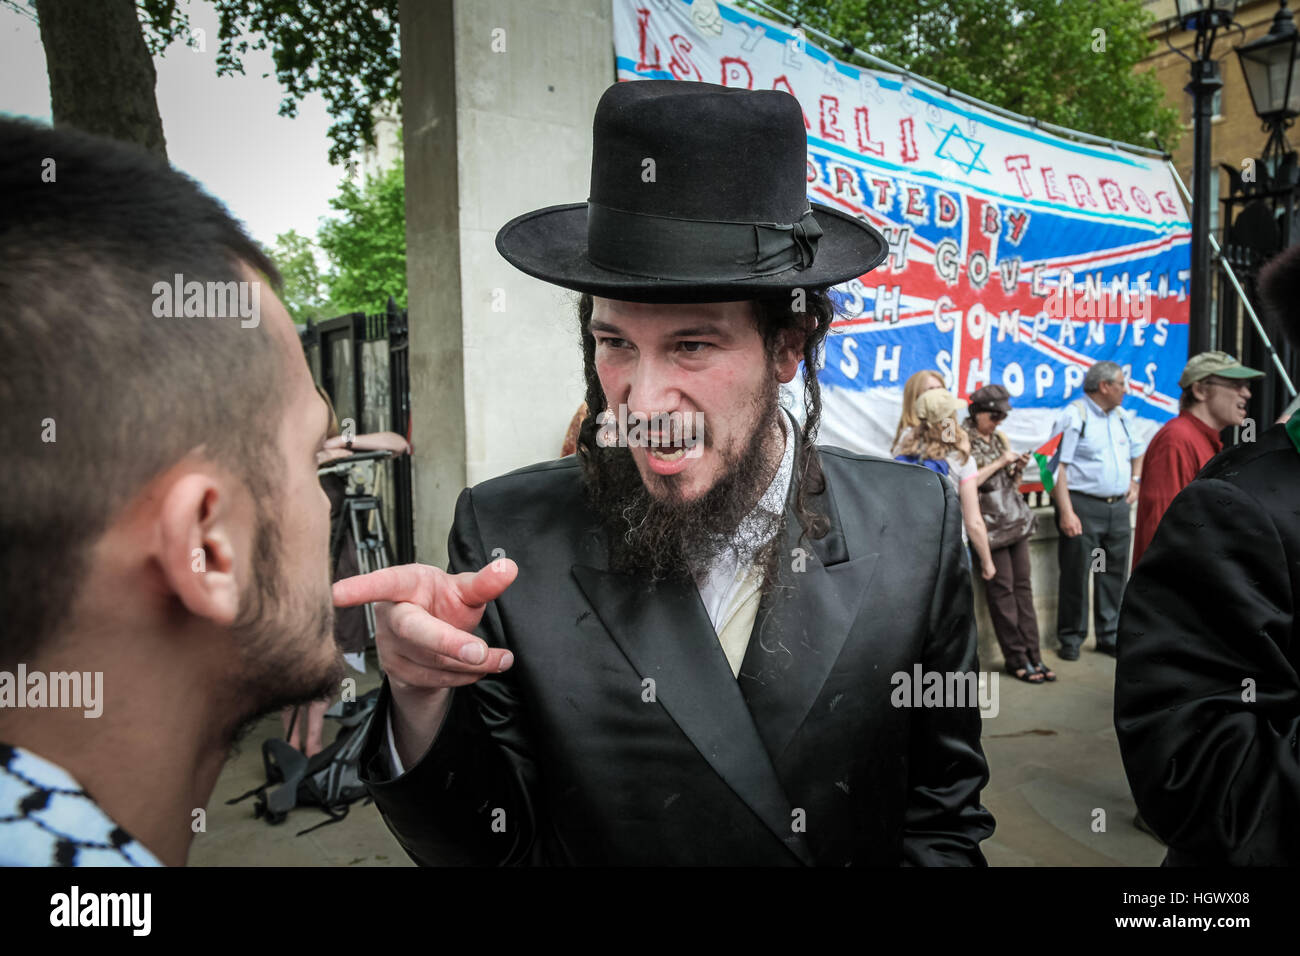 Jews Against Zionism. Protest march against the violence used by Israeli soldiers during the Gaza Flotilla Killings. - Stock Image